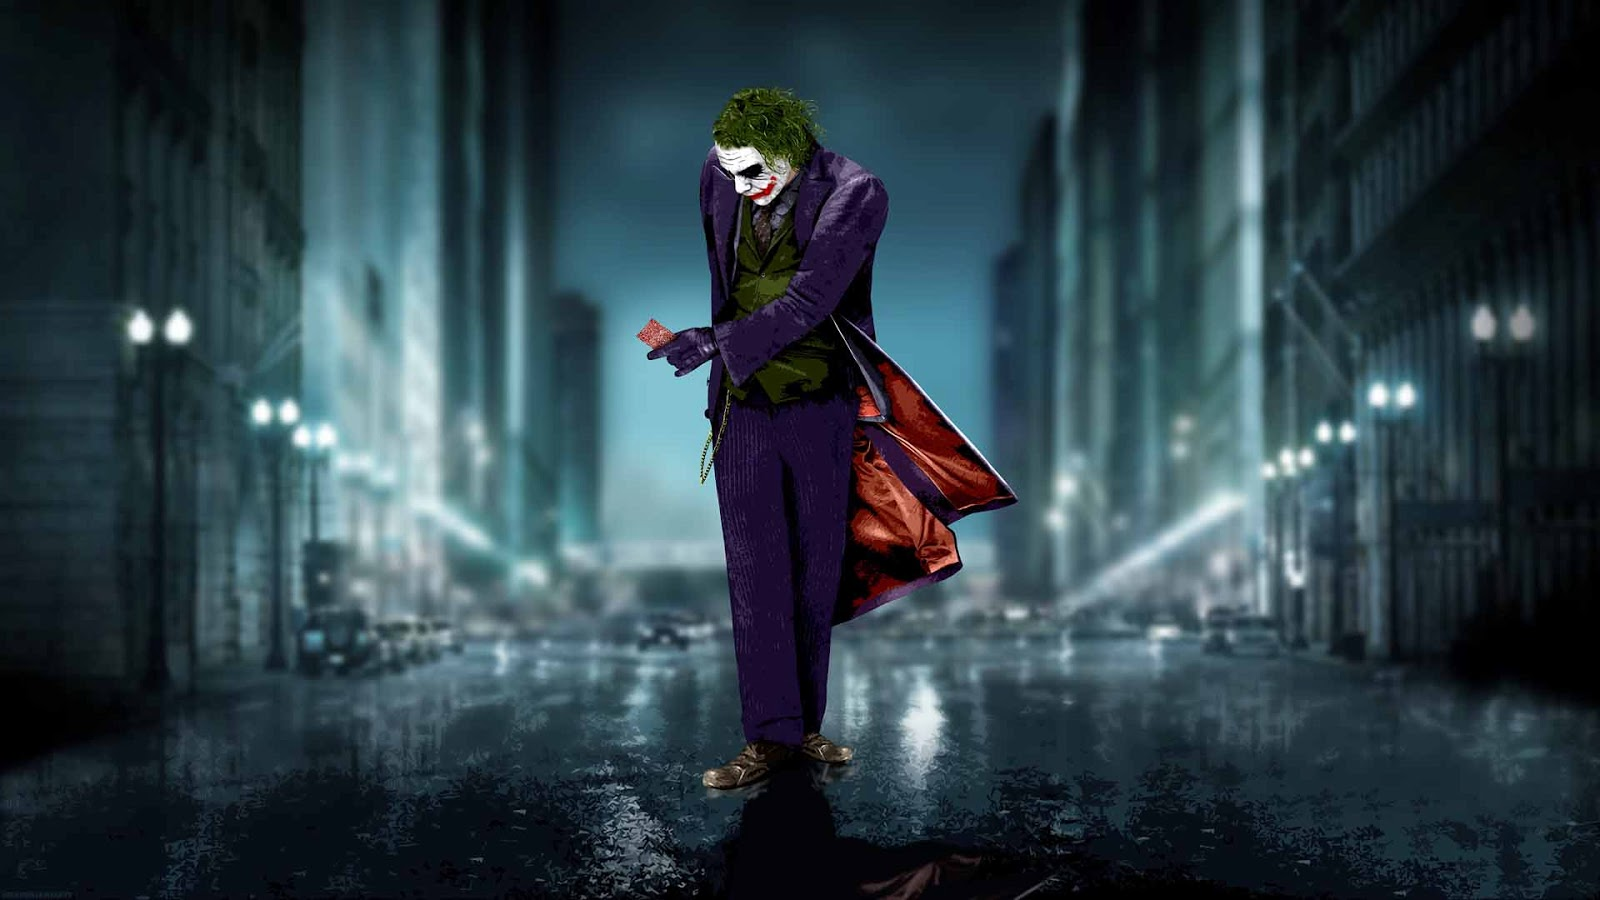 Joker hd wallpapers hd wallpapers pics for Joker immagini hd